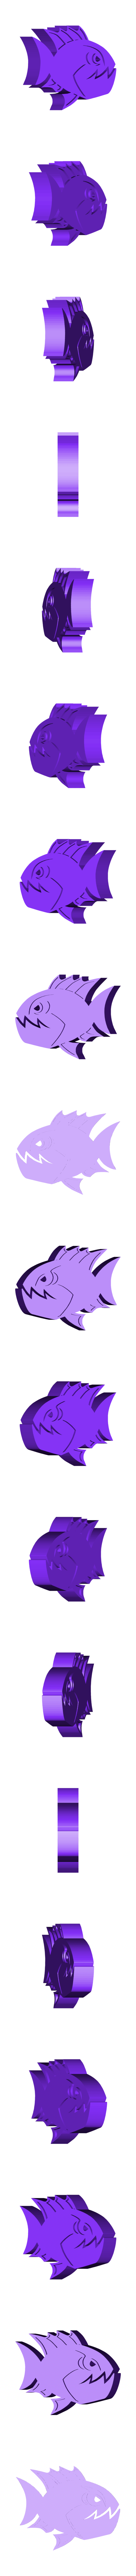 Fish.stl Download free STL file Angry Fish • Object to 3D print, Muzz64